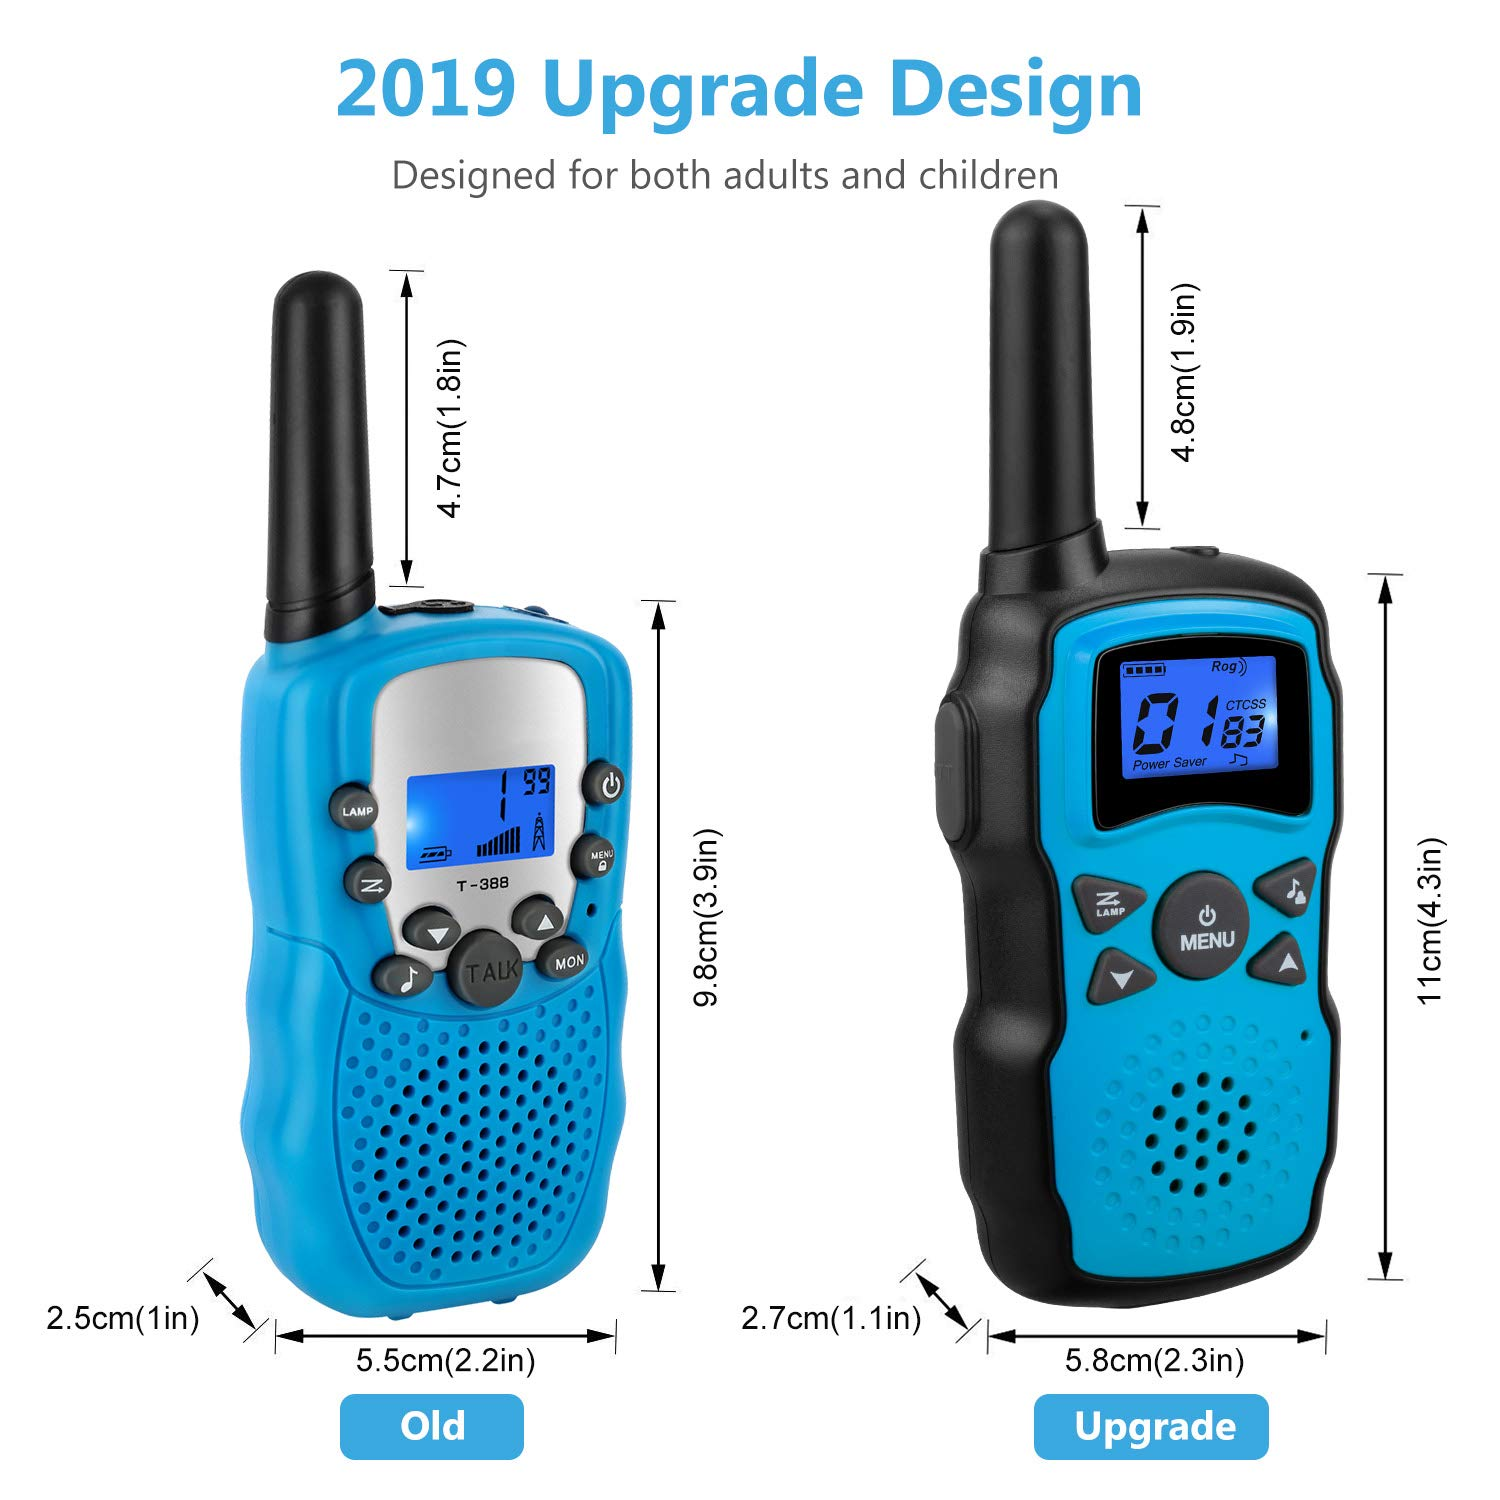 Wishouse 2 Rechargeable Walkie Talkies for Kids with Charger Battery, Two Way Radio Family Talkabout for Adult Cruise Ship Long Range, Outdoor Camping Hiking Fun Toys Birthday Gift for Girls Boys Blue by Wishouse (Image #4)